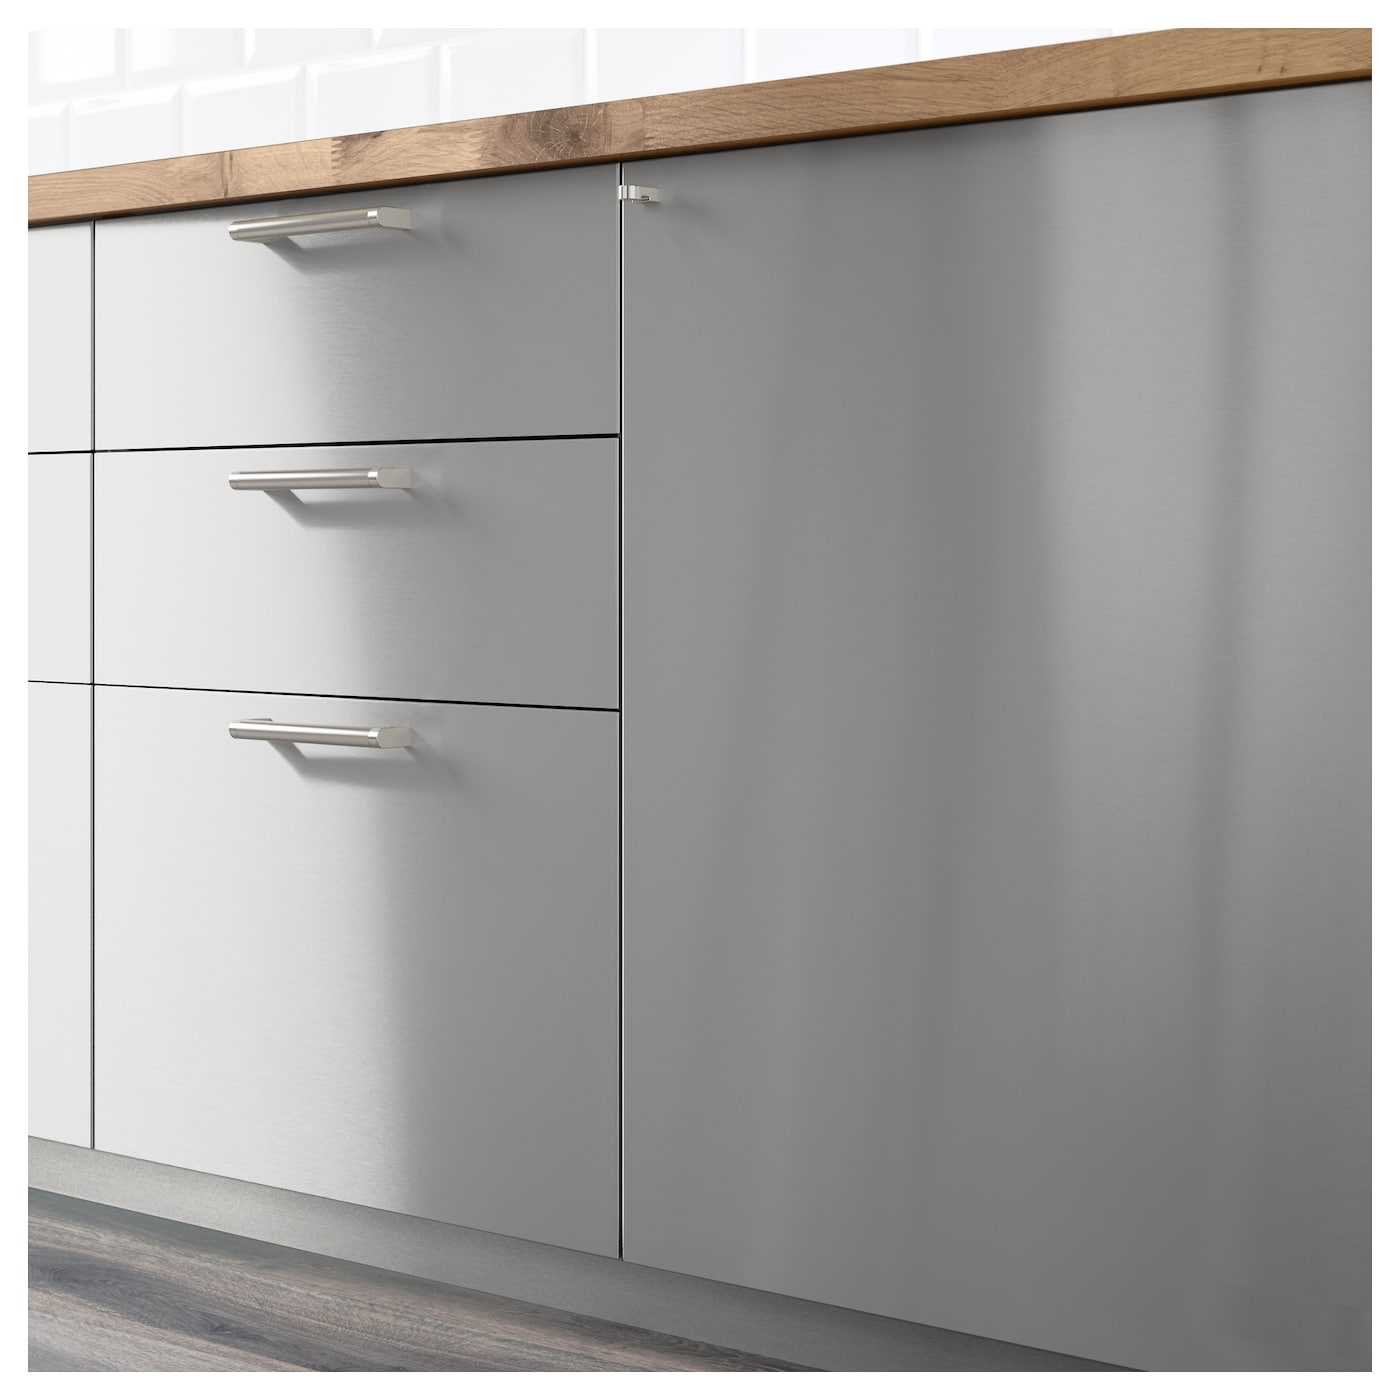 Kitchen Cabinet Doors And Fronts: GREVSTA Drawer Front Stainless Steel 80 X 40 Cm